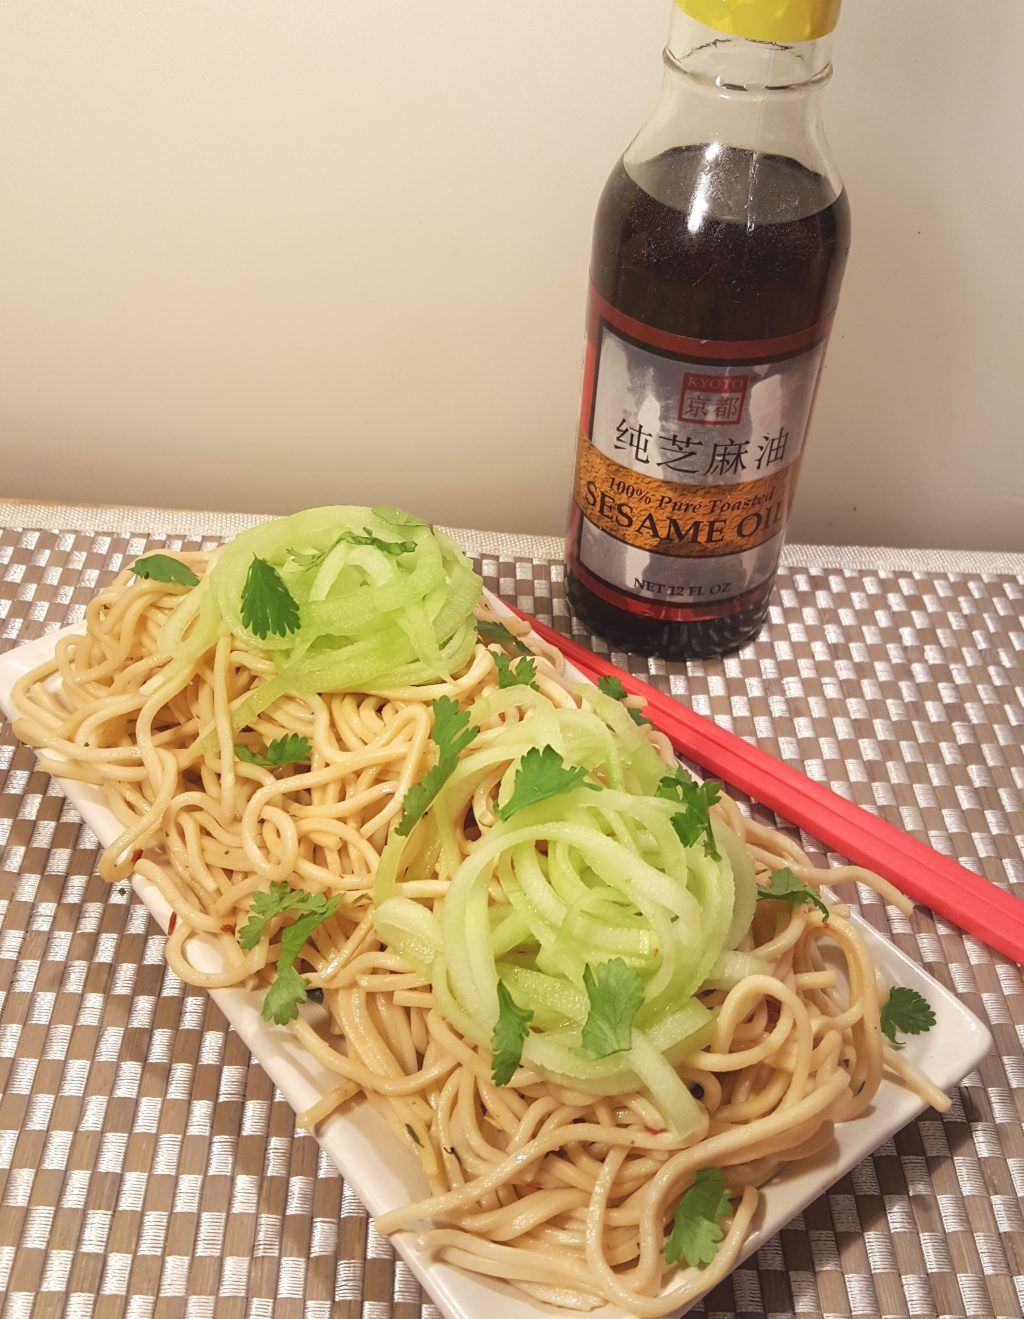 Pressure Cooker P.F. Chang's Garlic Noodles